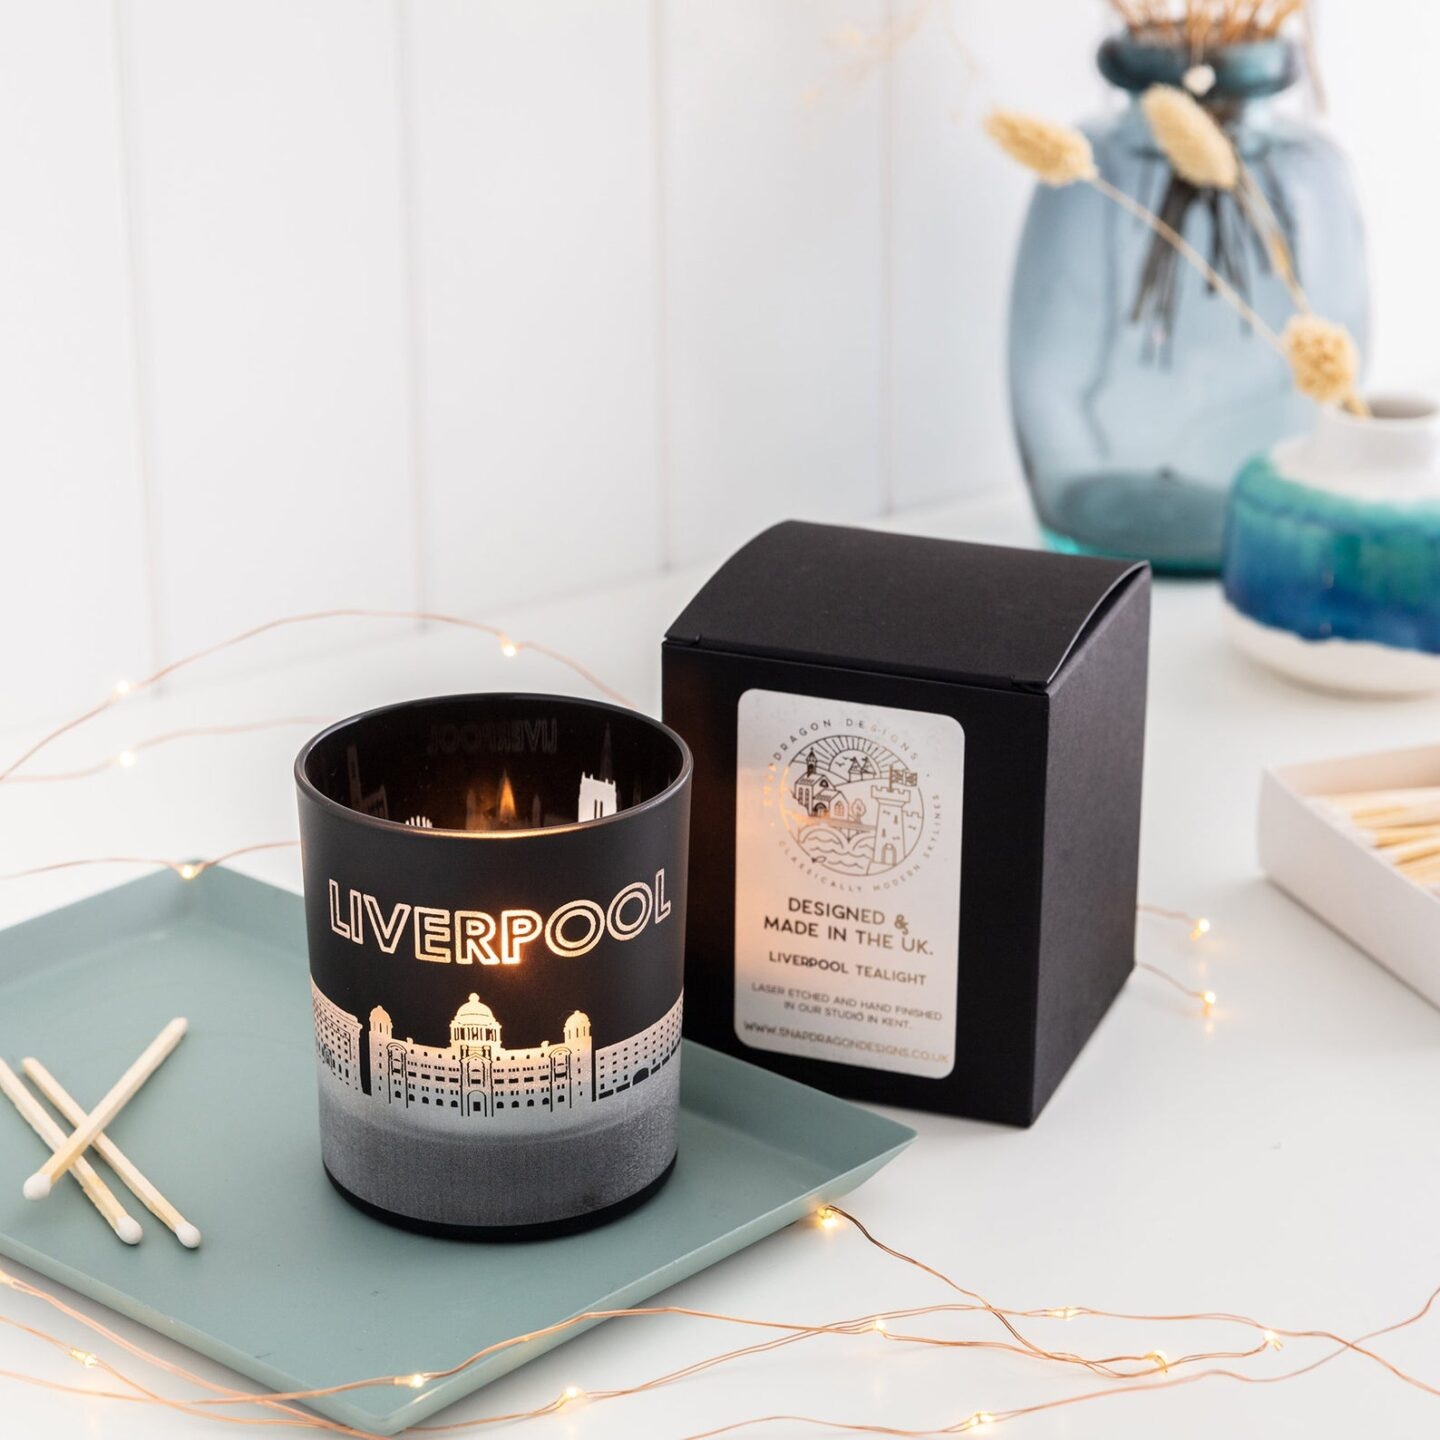 Black coloured Liverpool tea light holder placed in front of the black box it comes packaged within. The tea light holder is shown with a candle burning inside it so that the Liverpool landmarks glow.